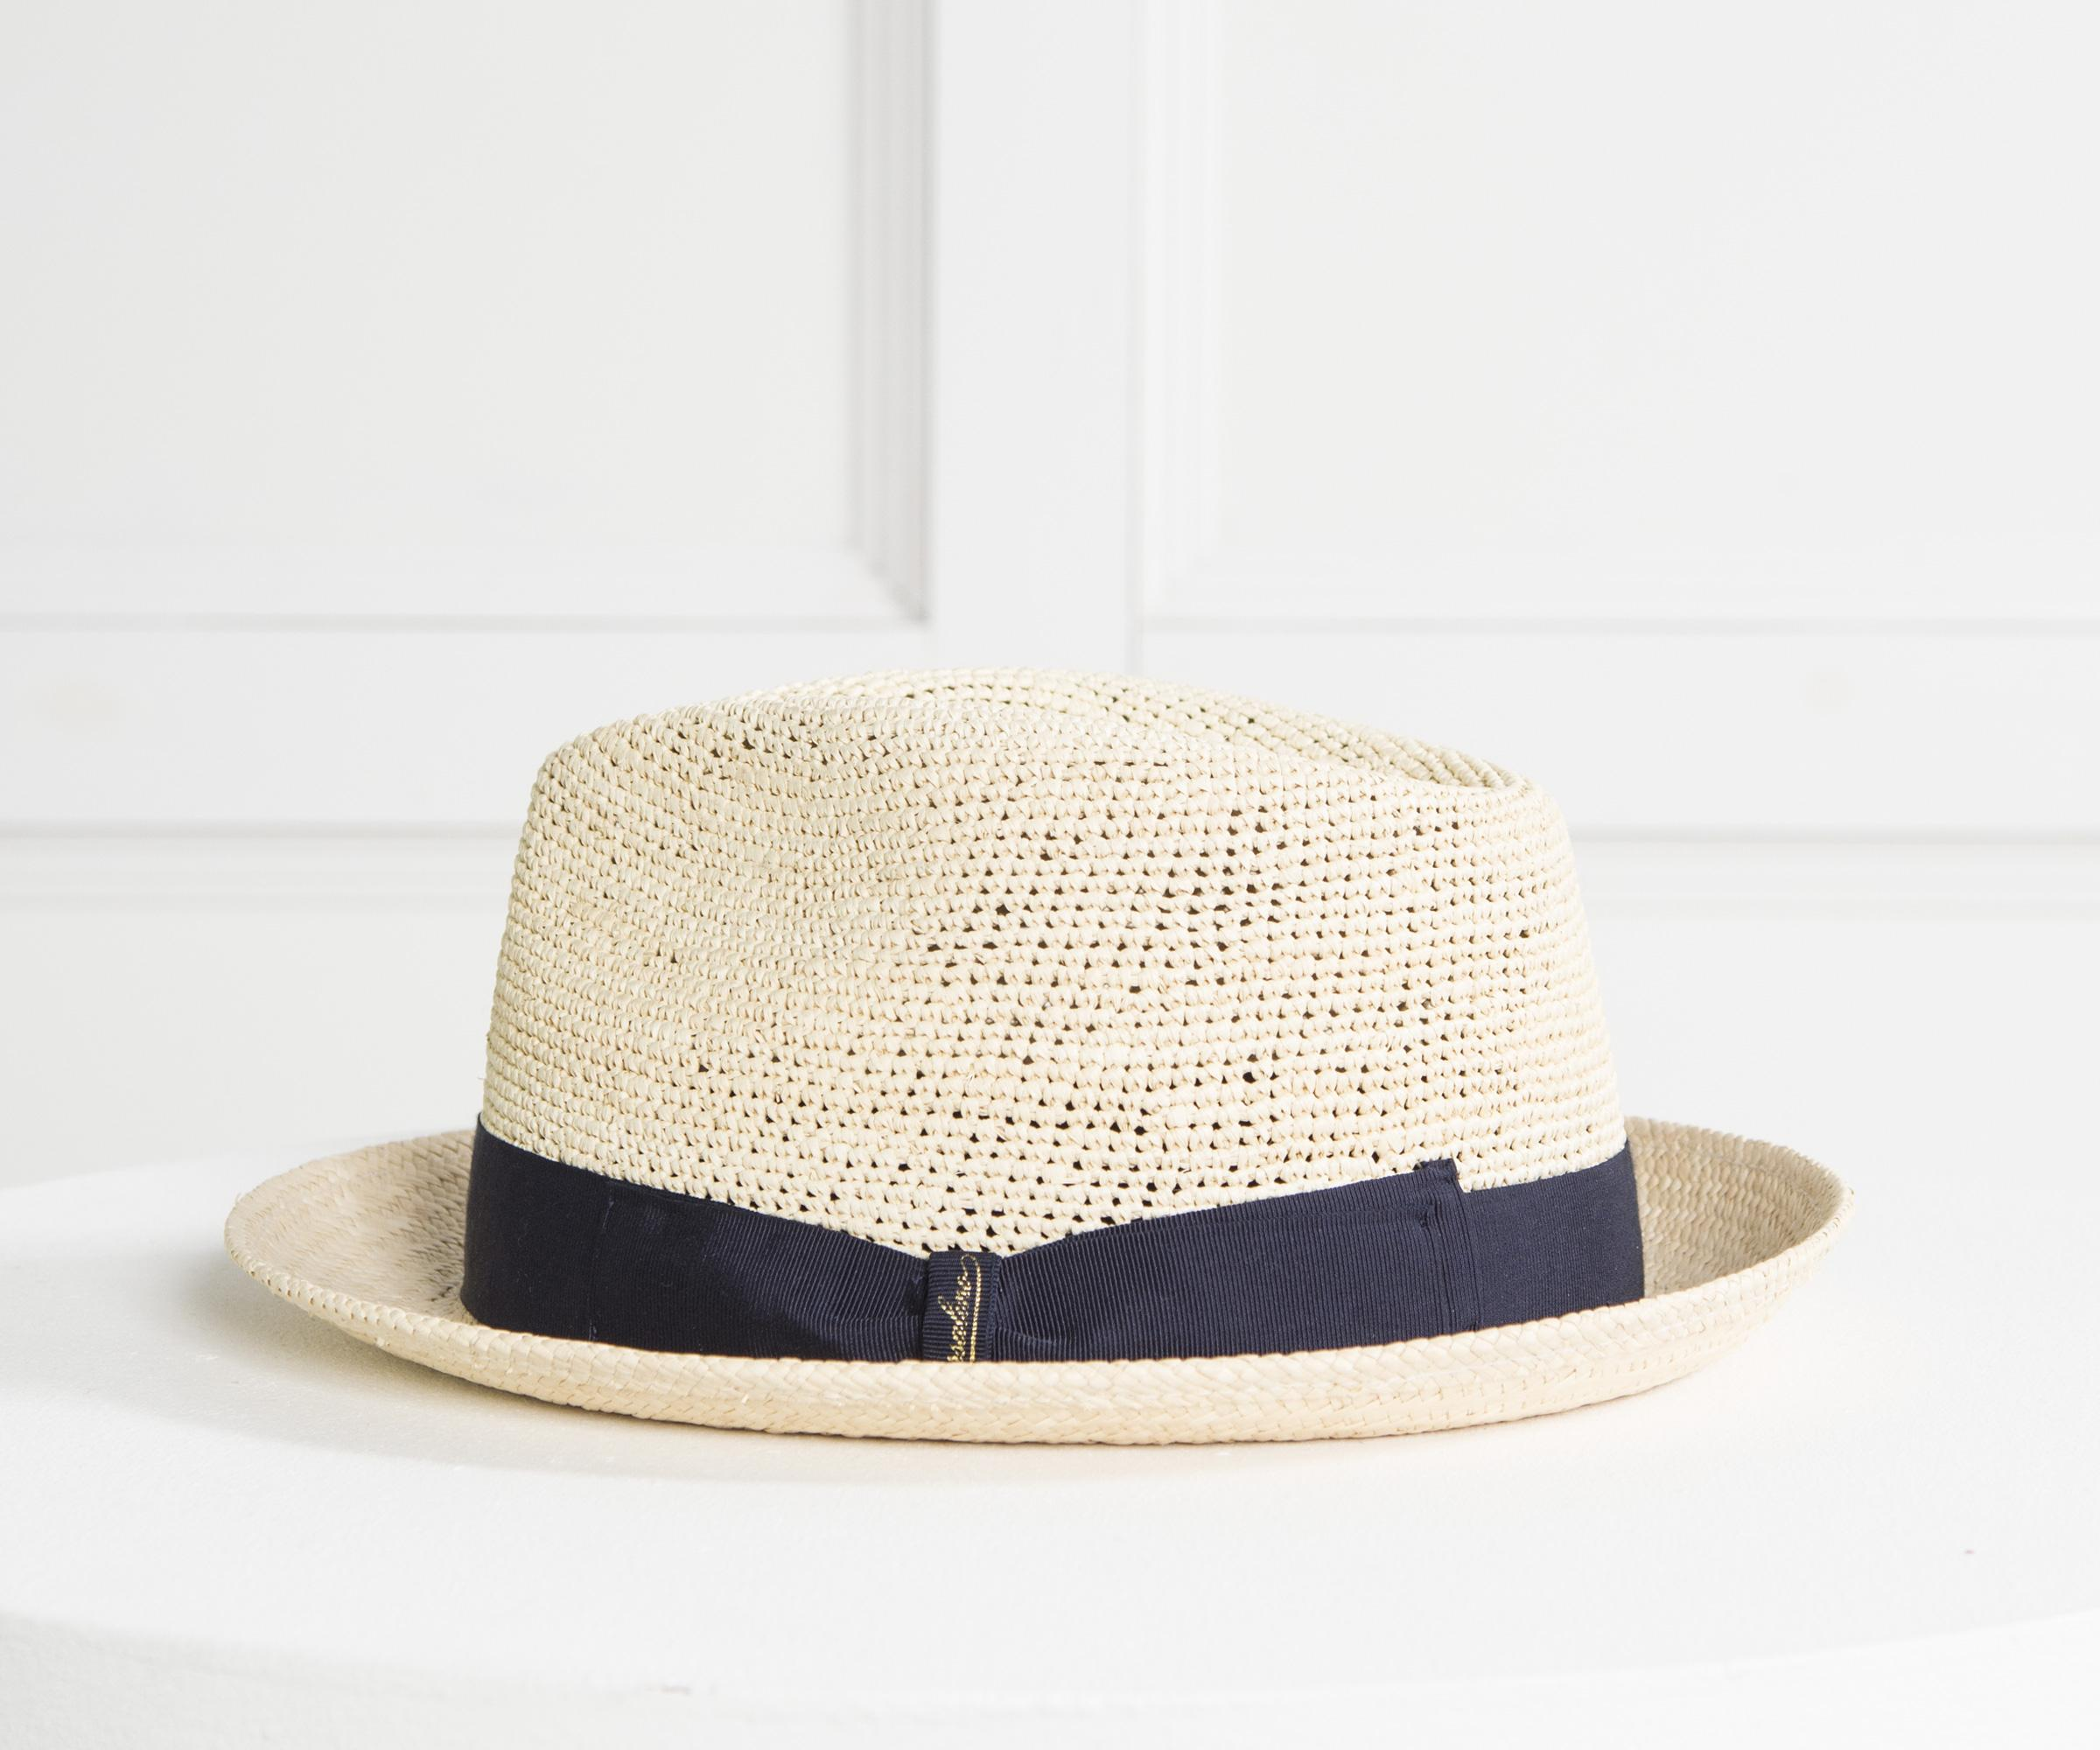 6e2452d5358 Lyst - Borsalino Made In Italy Straw Trilby With Navy Band in Blue ...